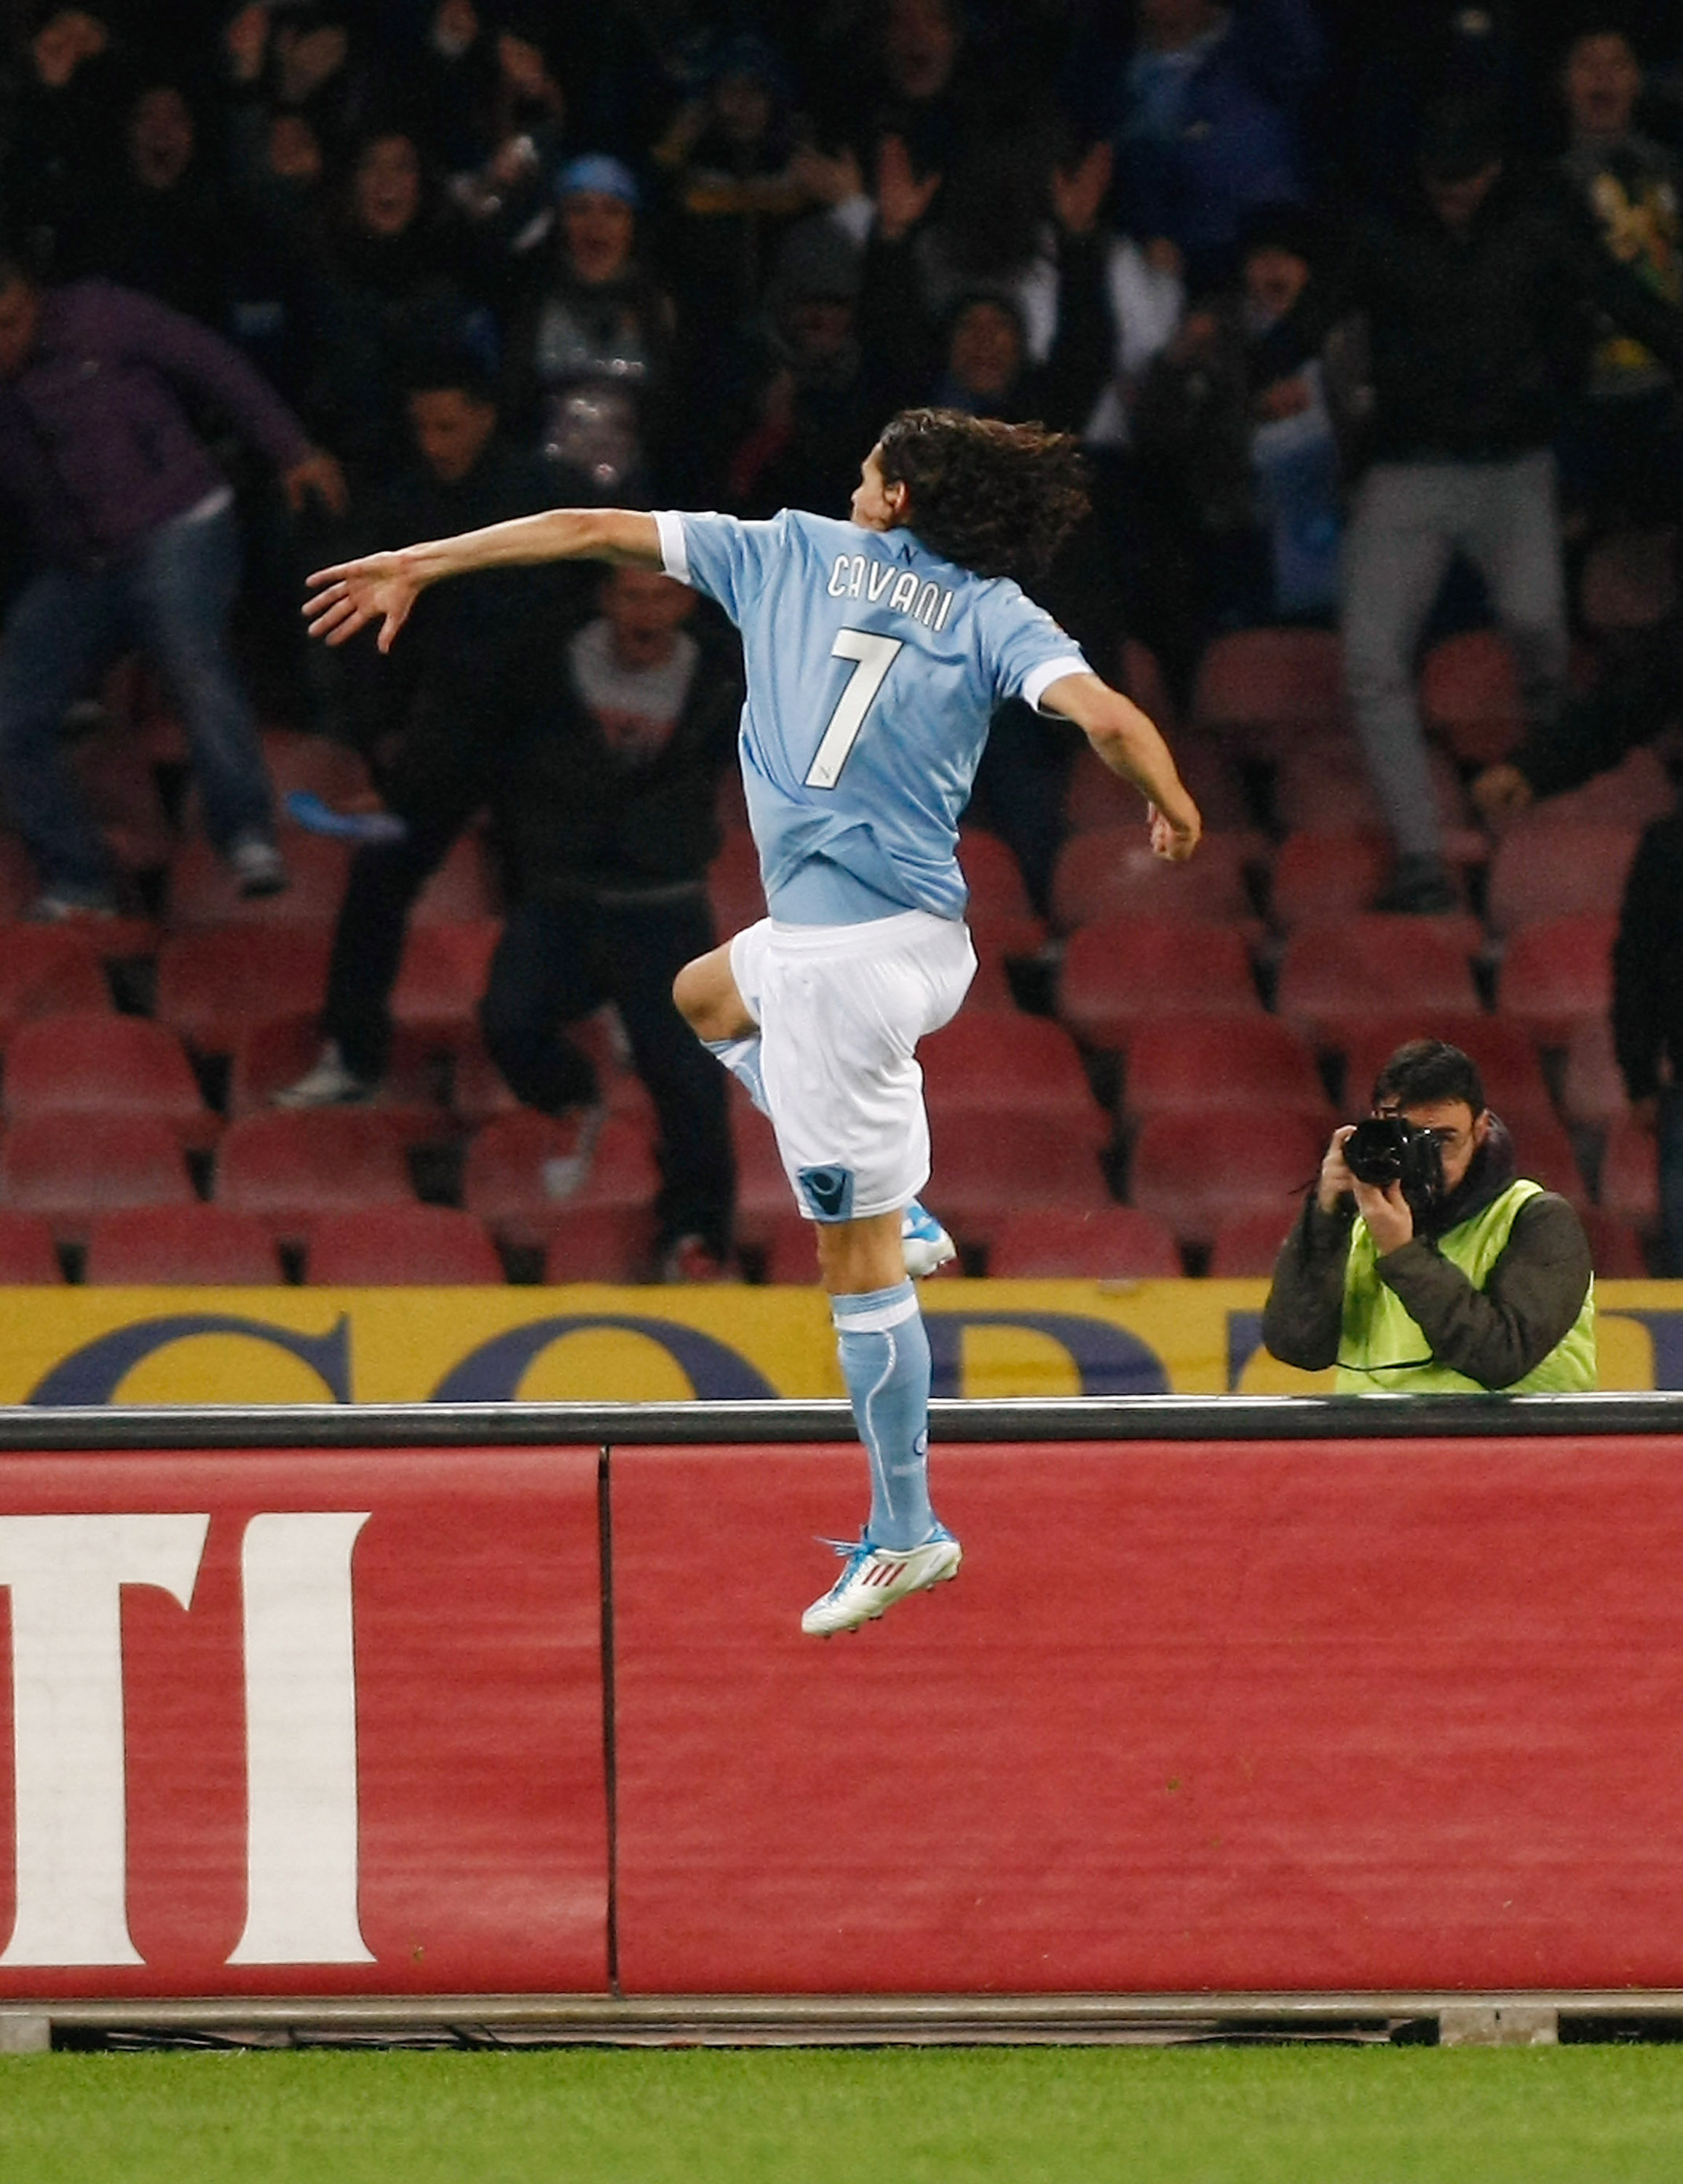 NAPLES, ITALY - MARCH 20:  Edinson Cavani of Napoli celebrates his goal during the Serie A match between SSC Napoli and Cagliari Calcio at Stadio San Paolo on March 20, 2011 in Naples, Italy.  (Photo by Maurizio Lagana/Getty Images)